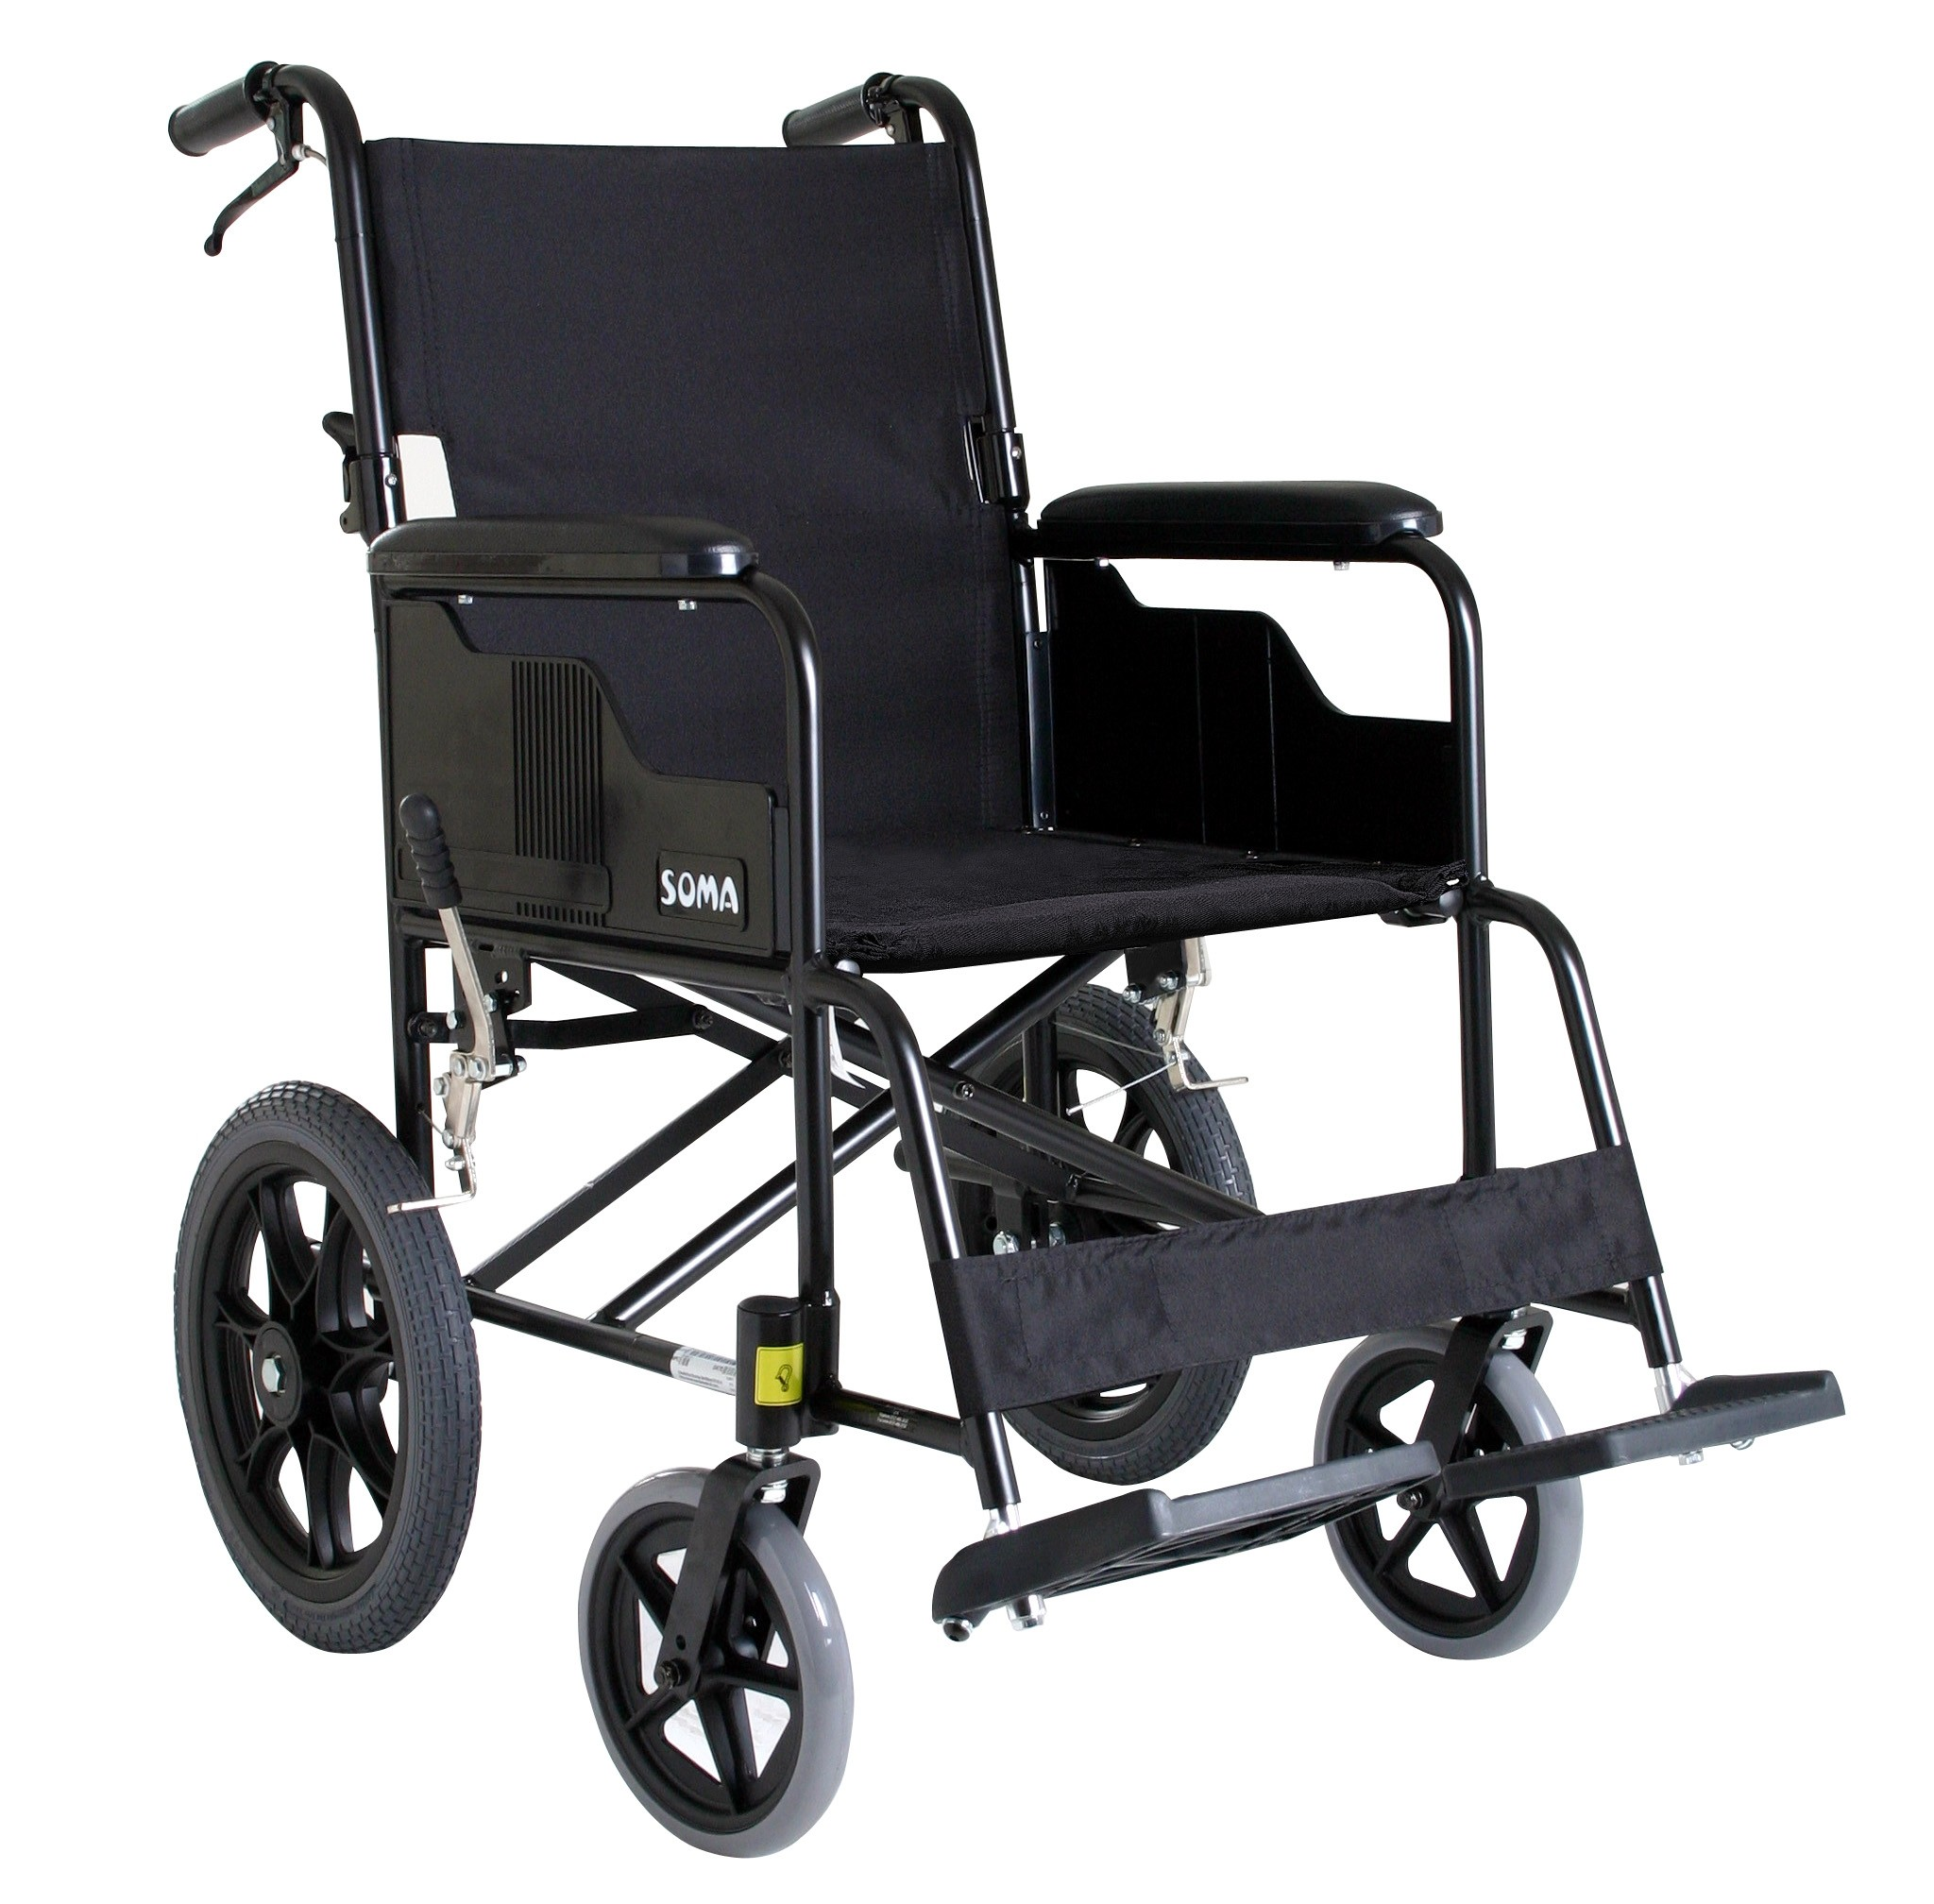 wheel chair in delhi ikea ektorp covers uk karma sparrow transit wheelchair cheap with price match